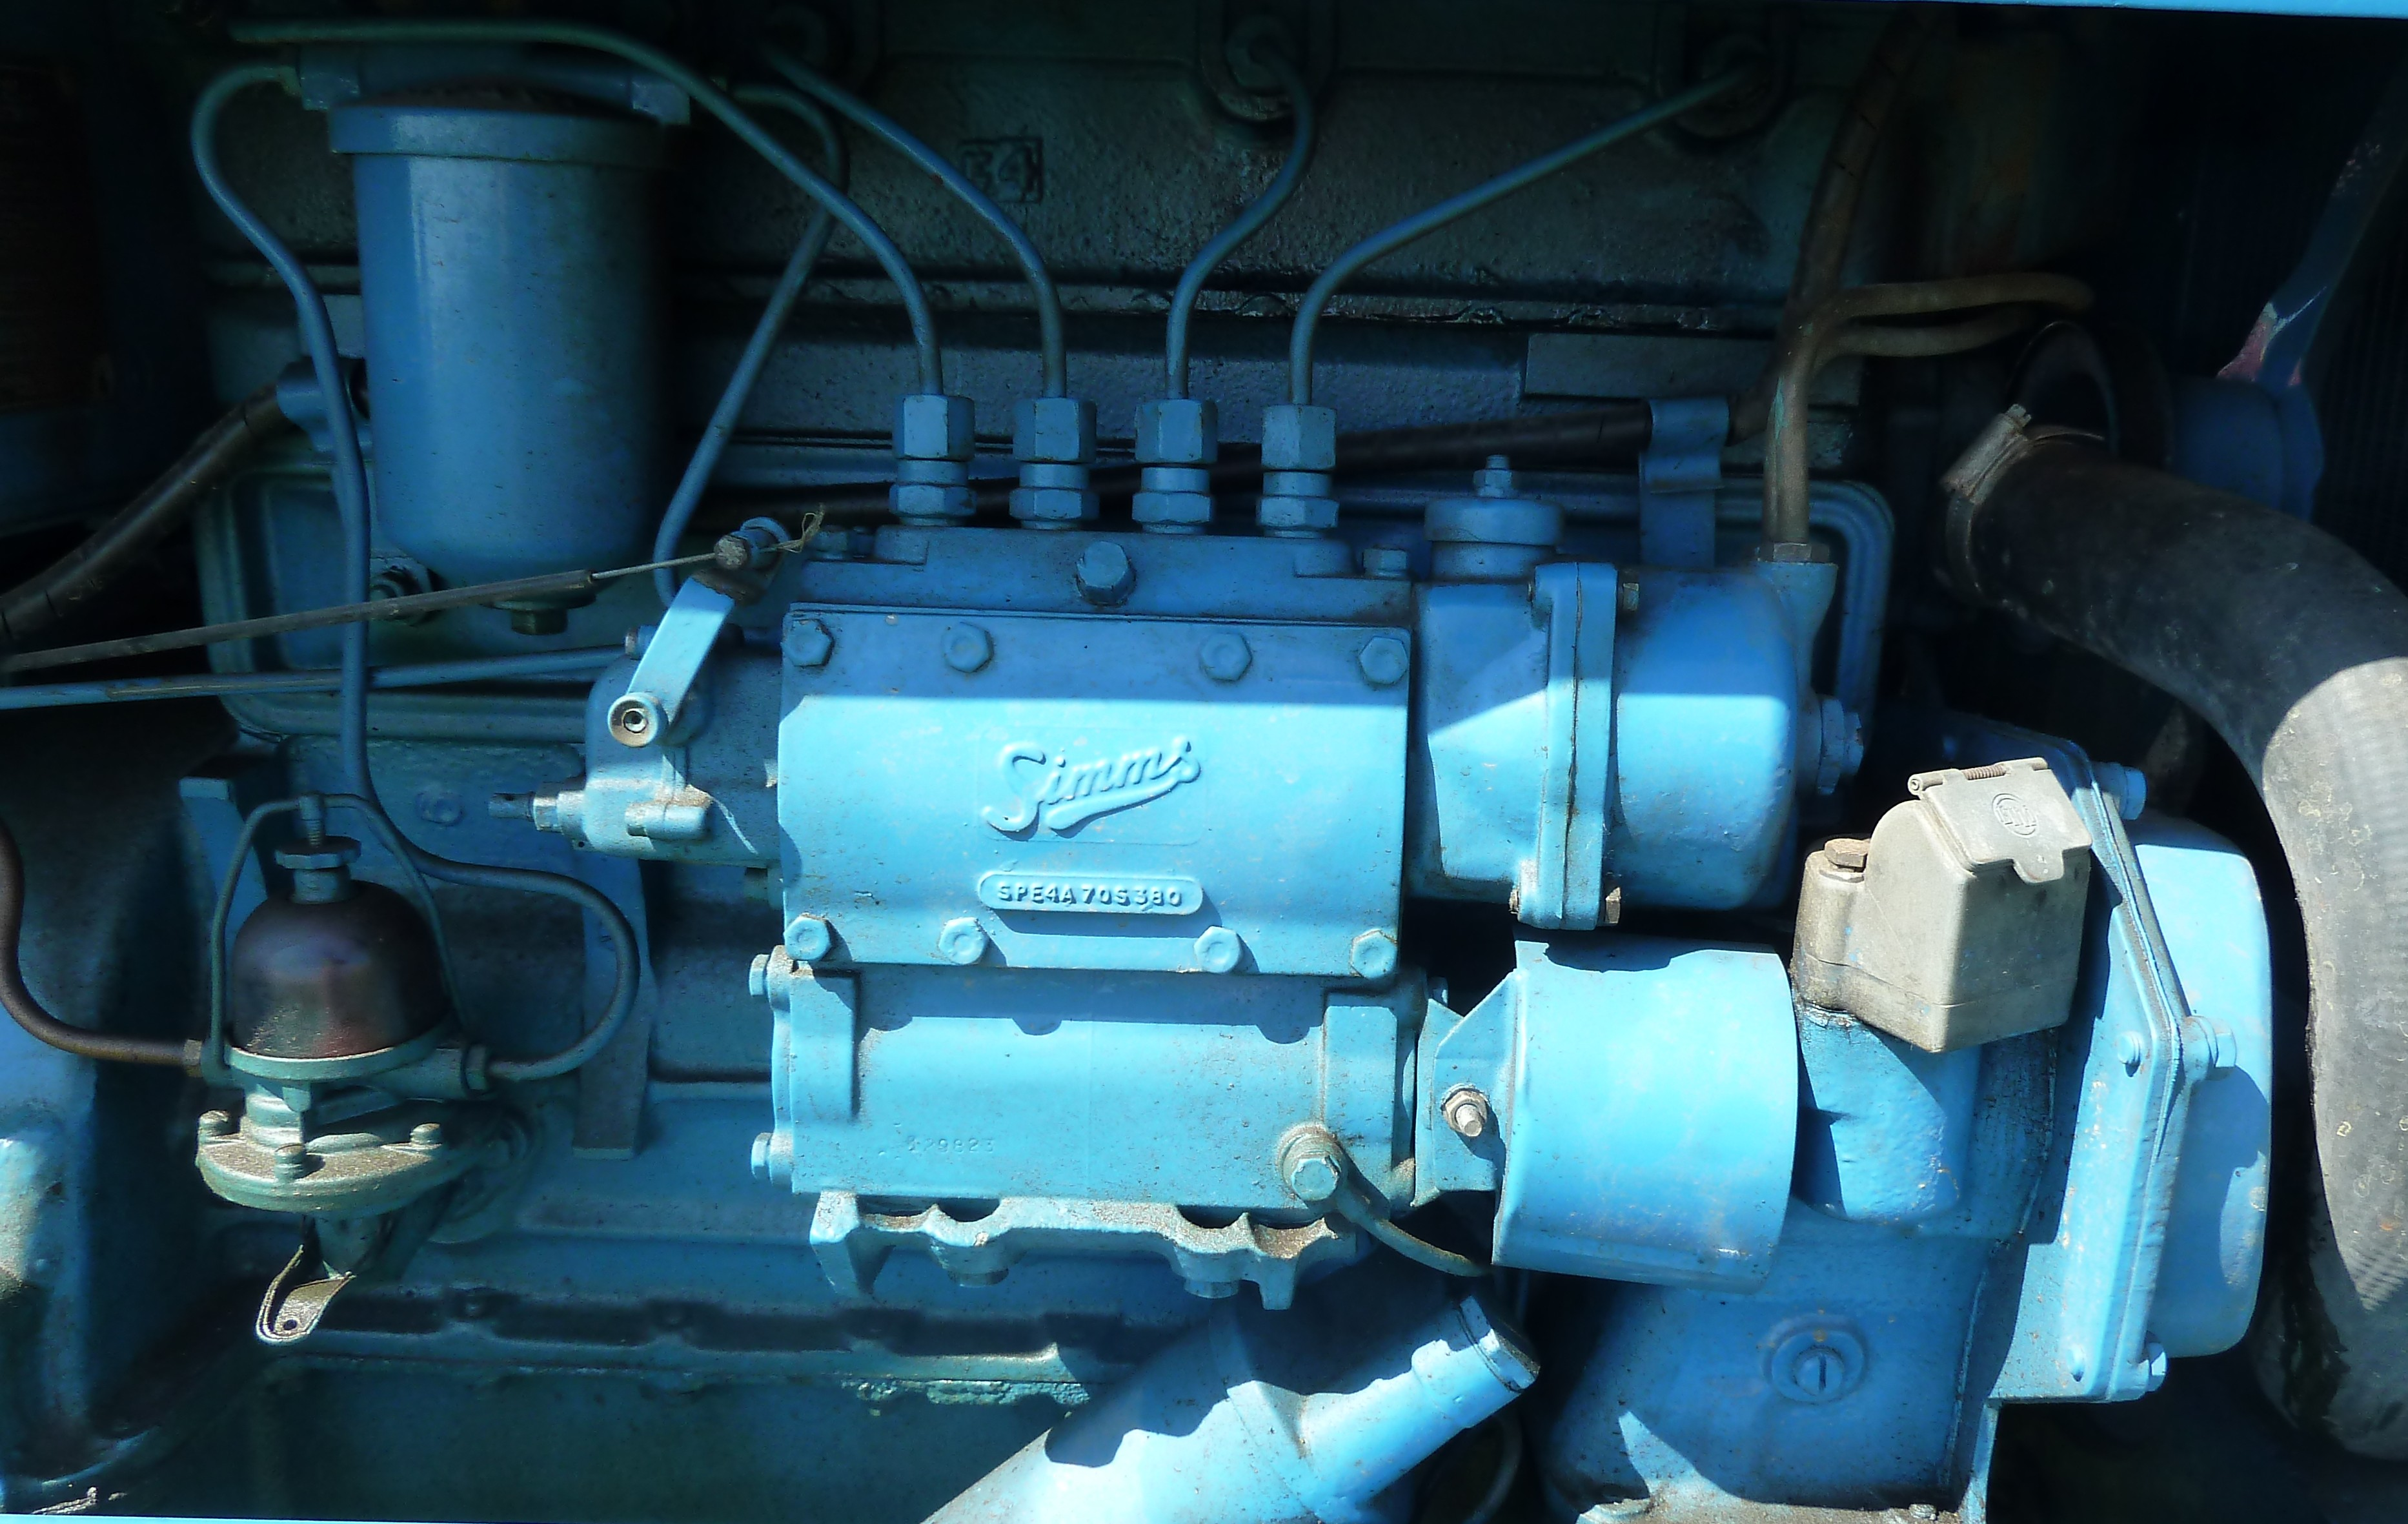 Simms diesel for Dexta Fordson fuel pump need A Troubleshooting